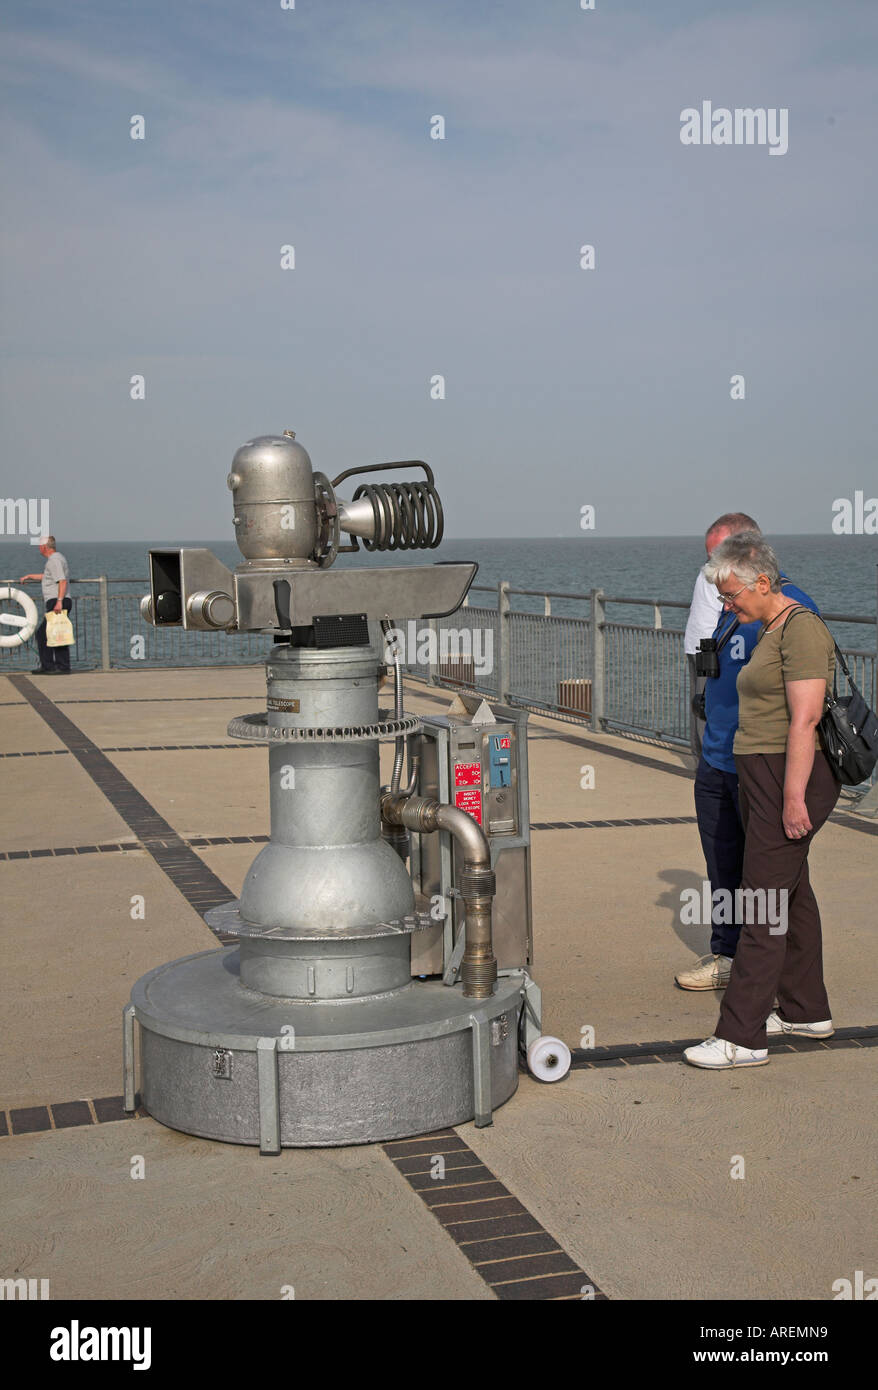 The Quantom Tunnelling Telescope by Tim Hunkin, Southwold pier, Suffolk, England - Stock Image